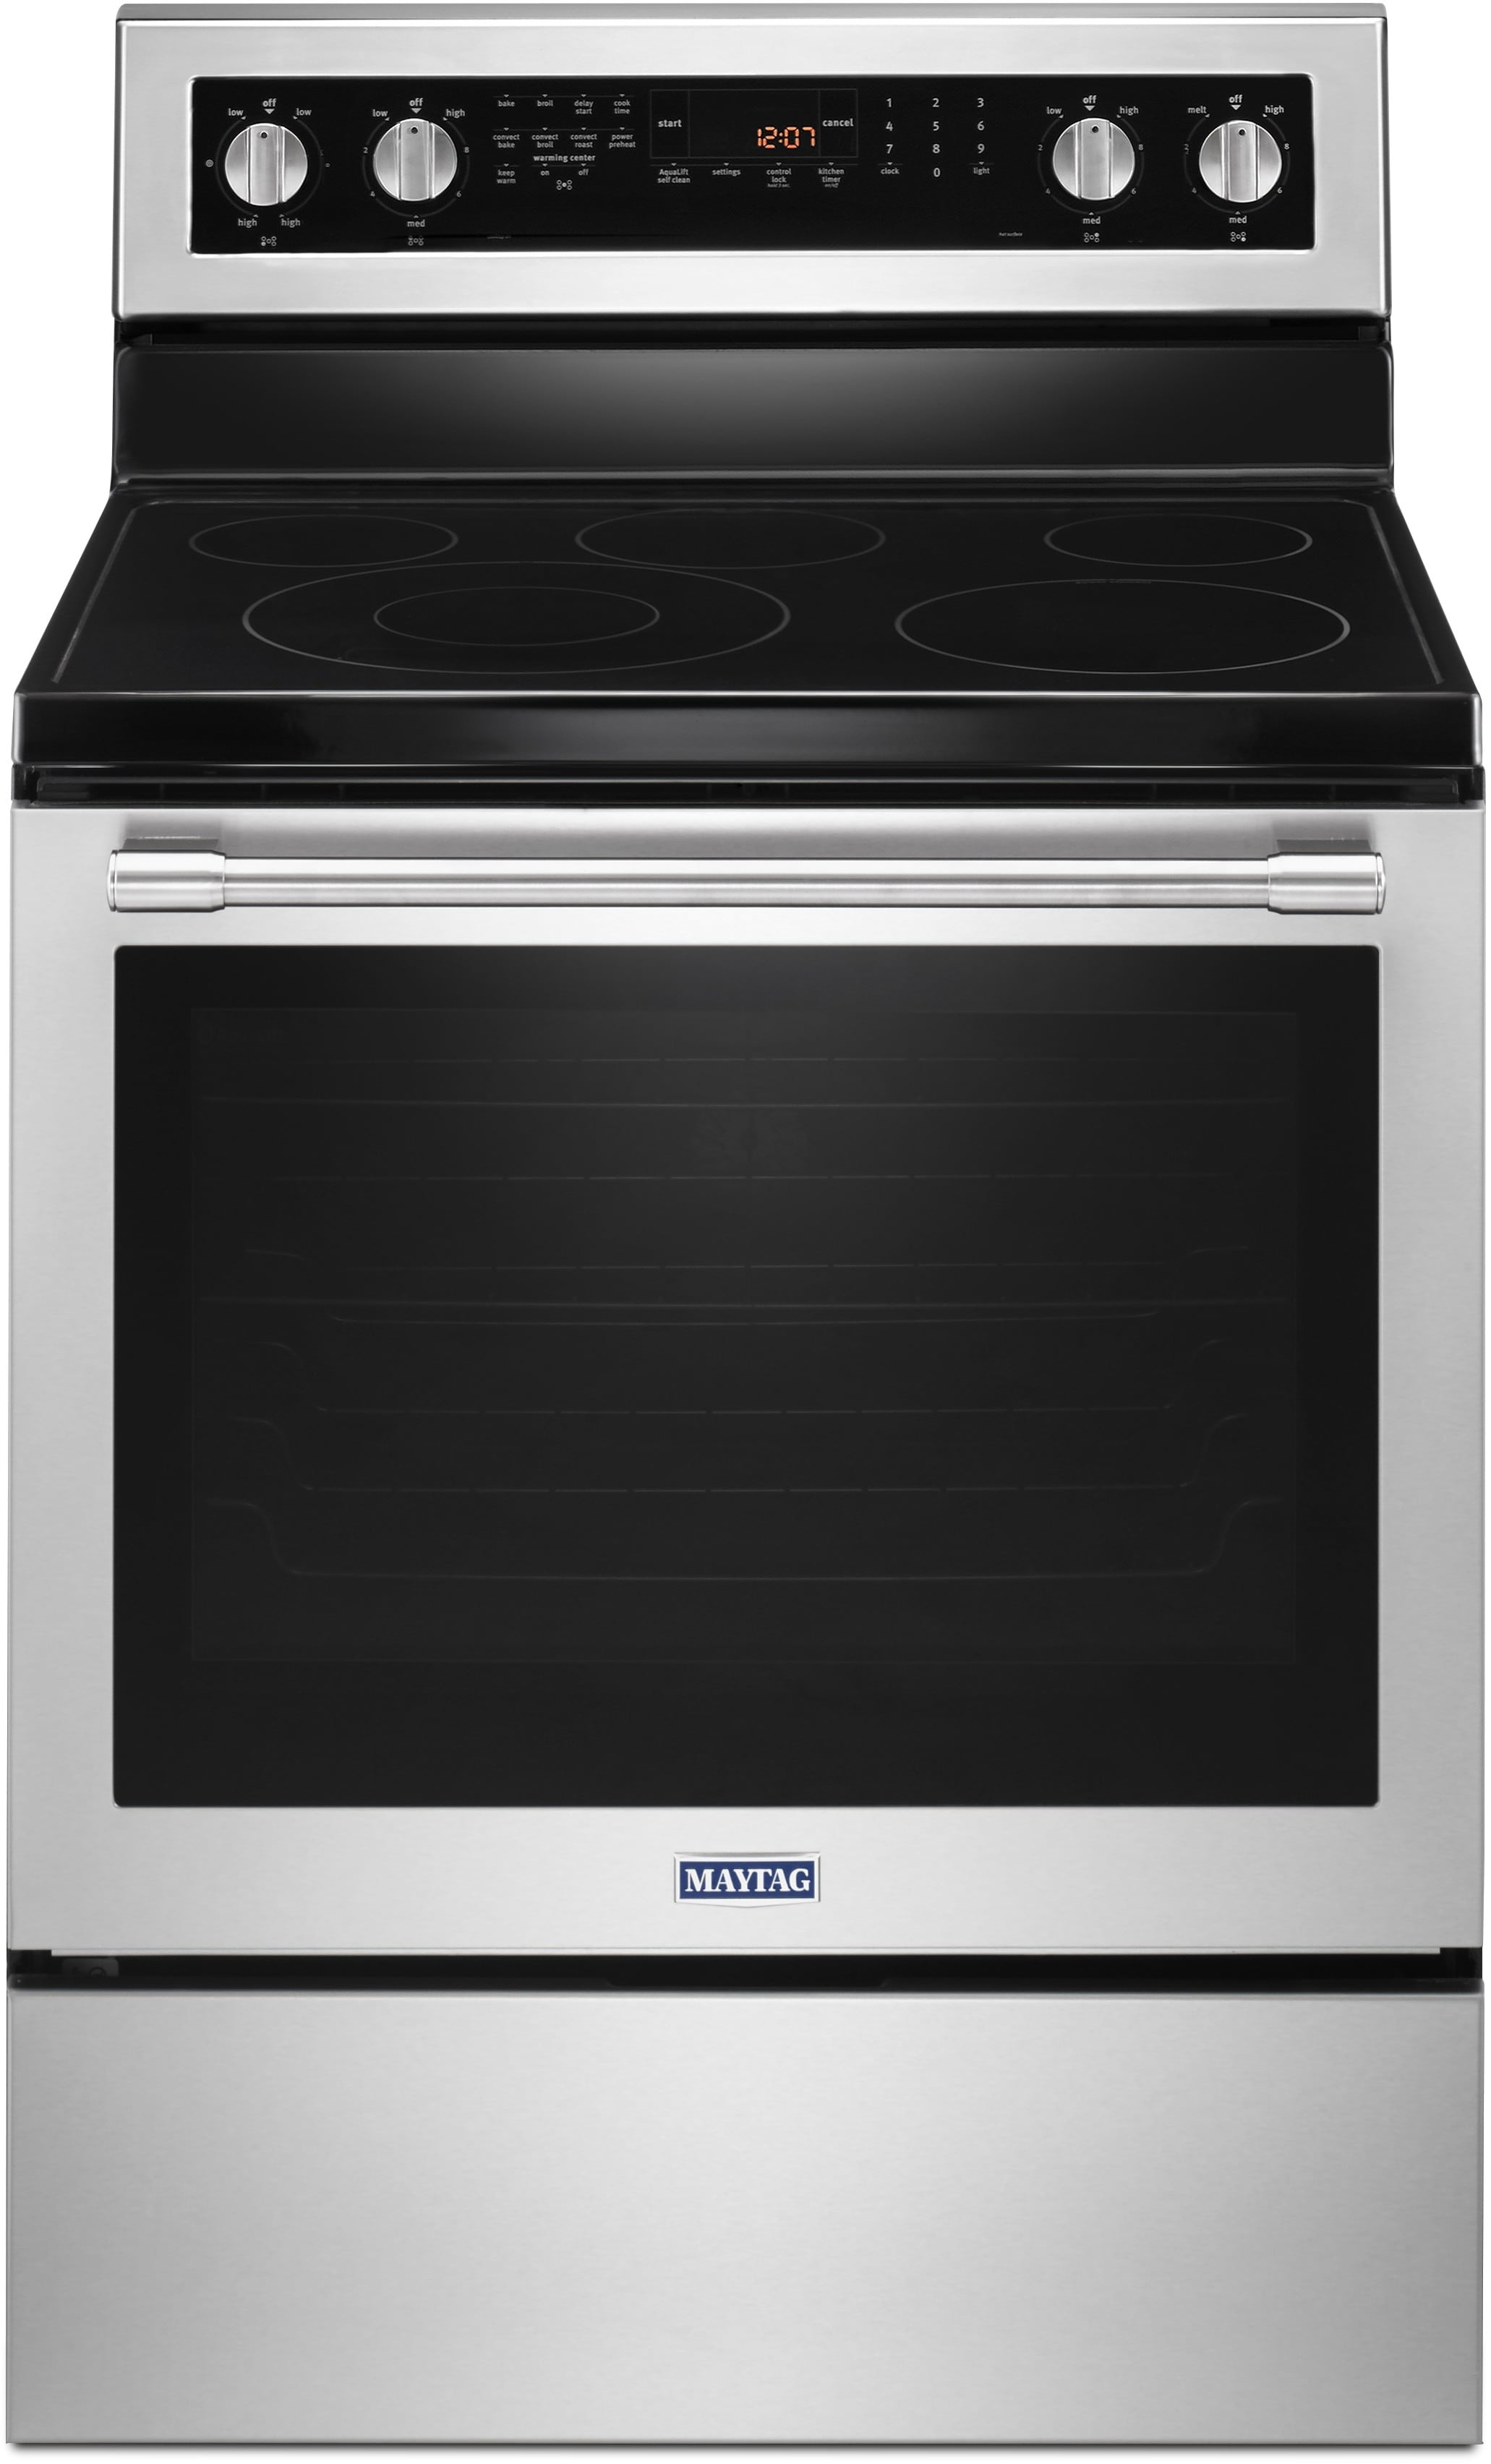 Maytag Mer8800fz 30 Inch Electric Range With Dual Choice